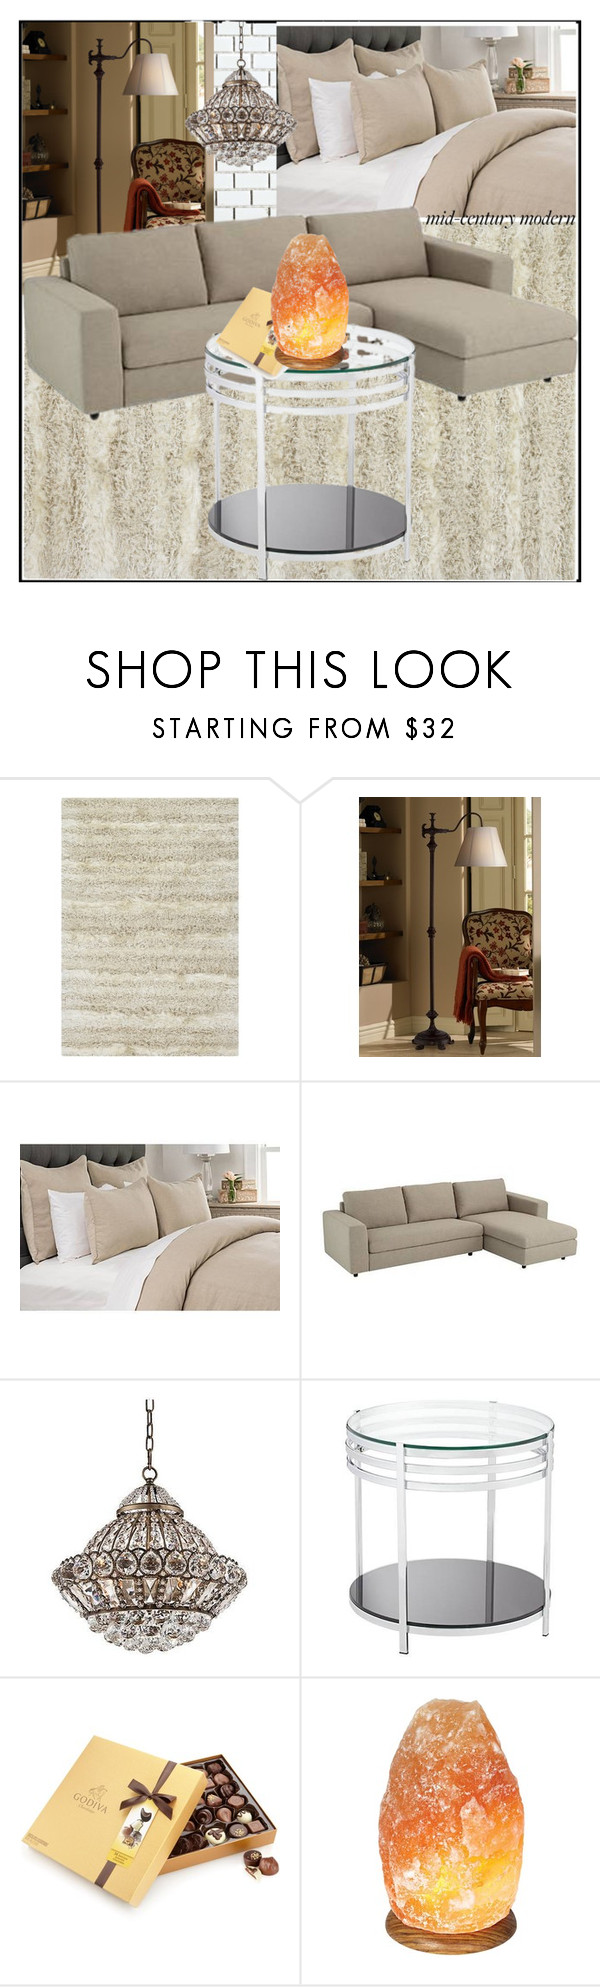 """lampsplus#4"" by sabahetasaric ❤ liked on Polyvore featuring interior, interiors, interior design, home, home decor, interior decorating, Merola, Diptyque and Universal Lighting and Decor"